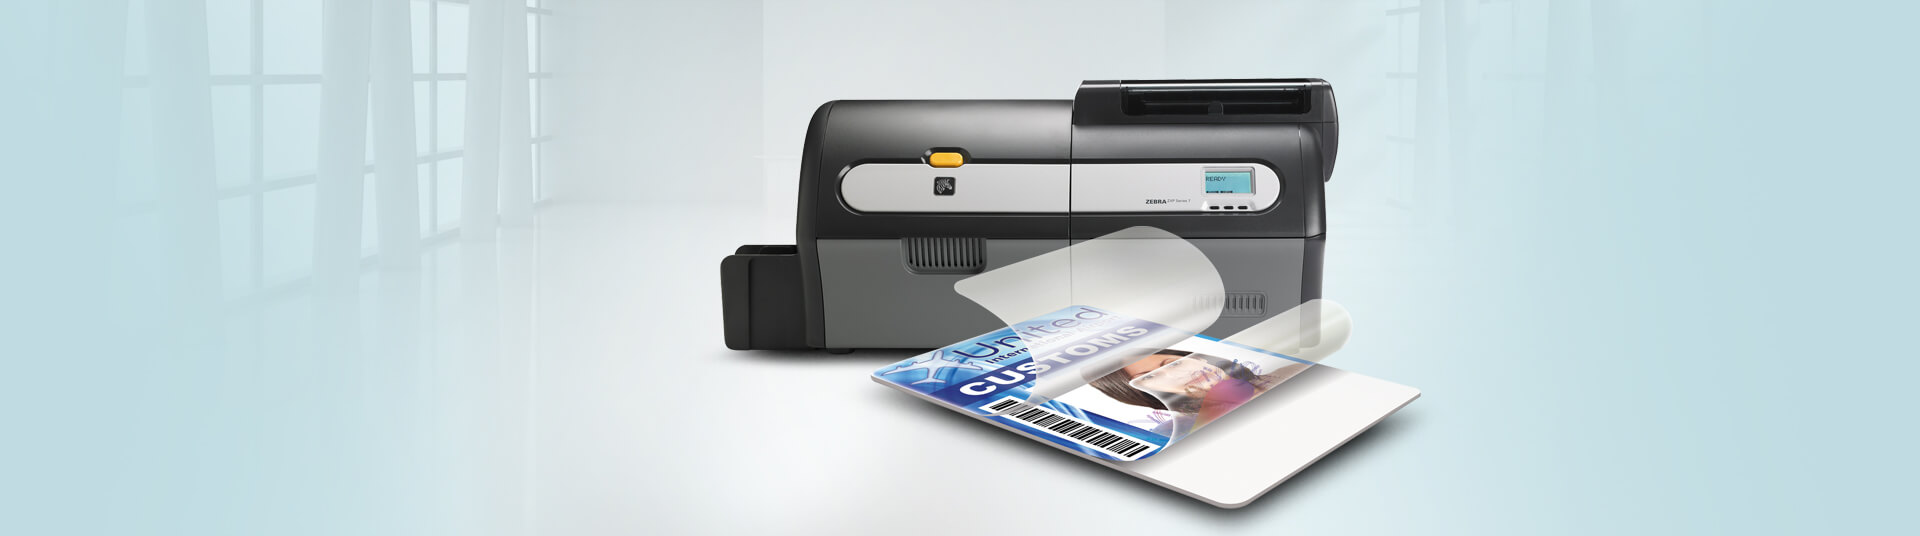 Laminating Photo ID Printers